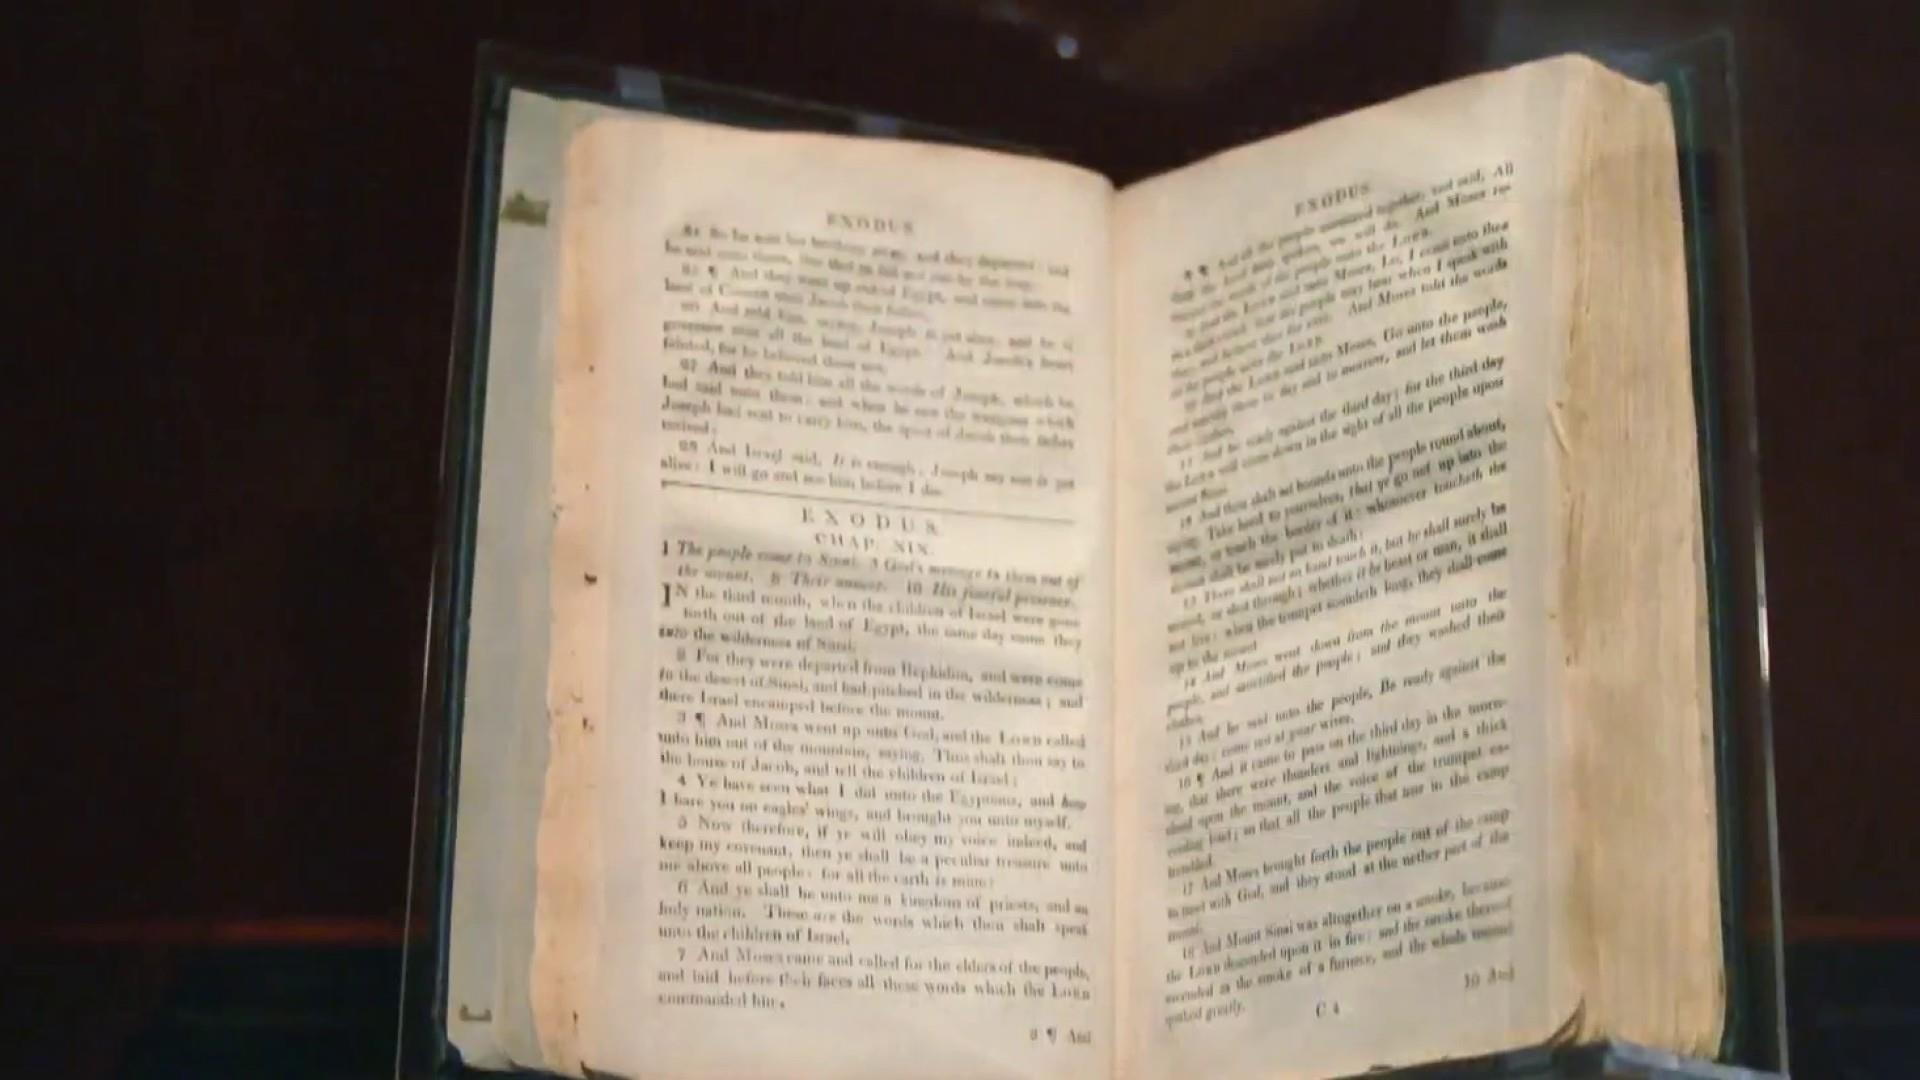 'Slave Bible' removed passages to instill obedience and uphold slavery